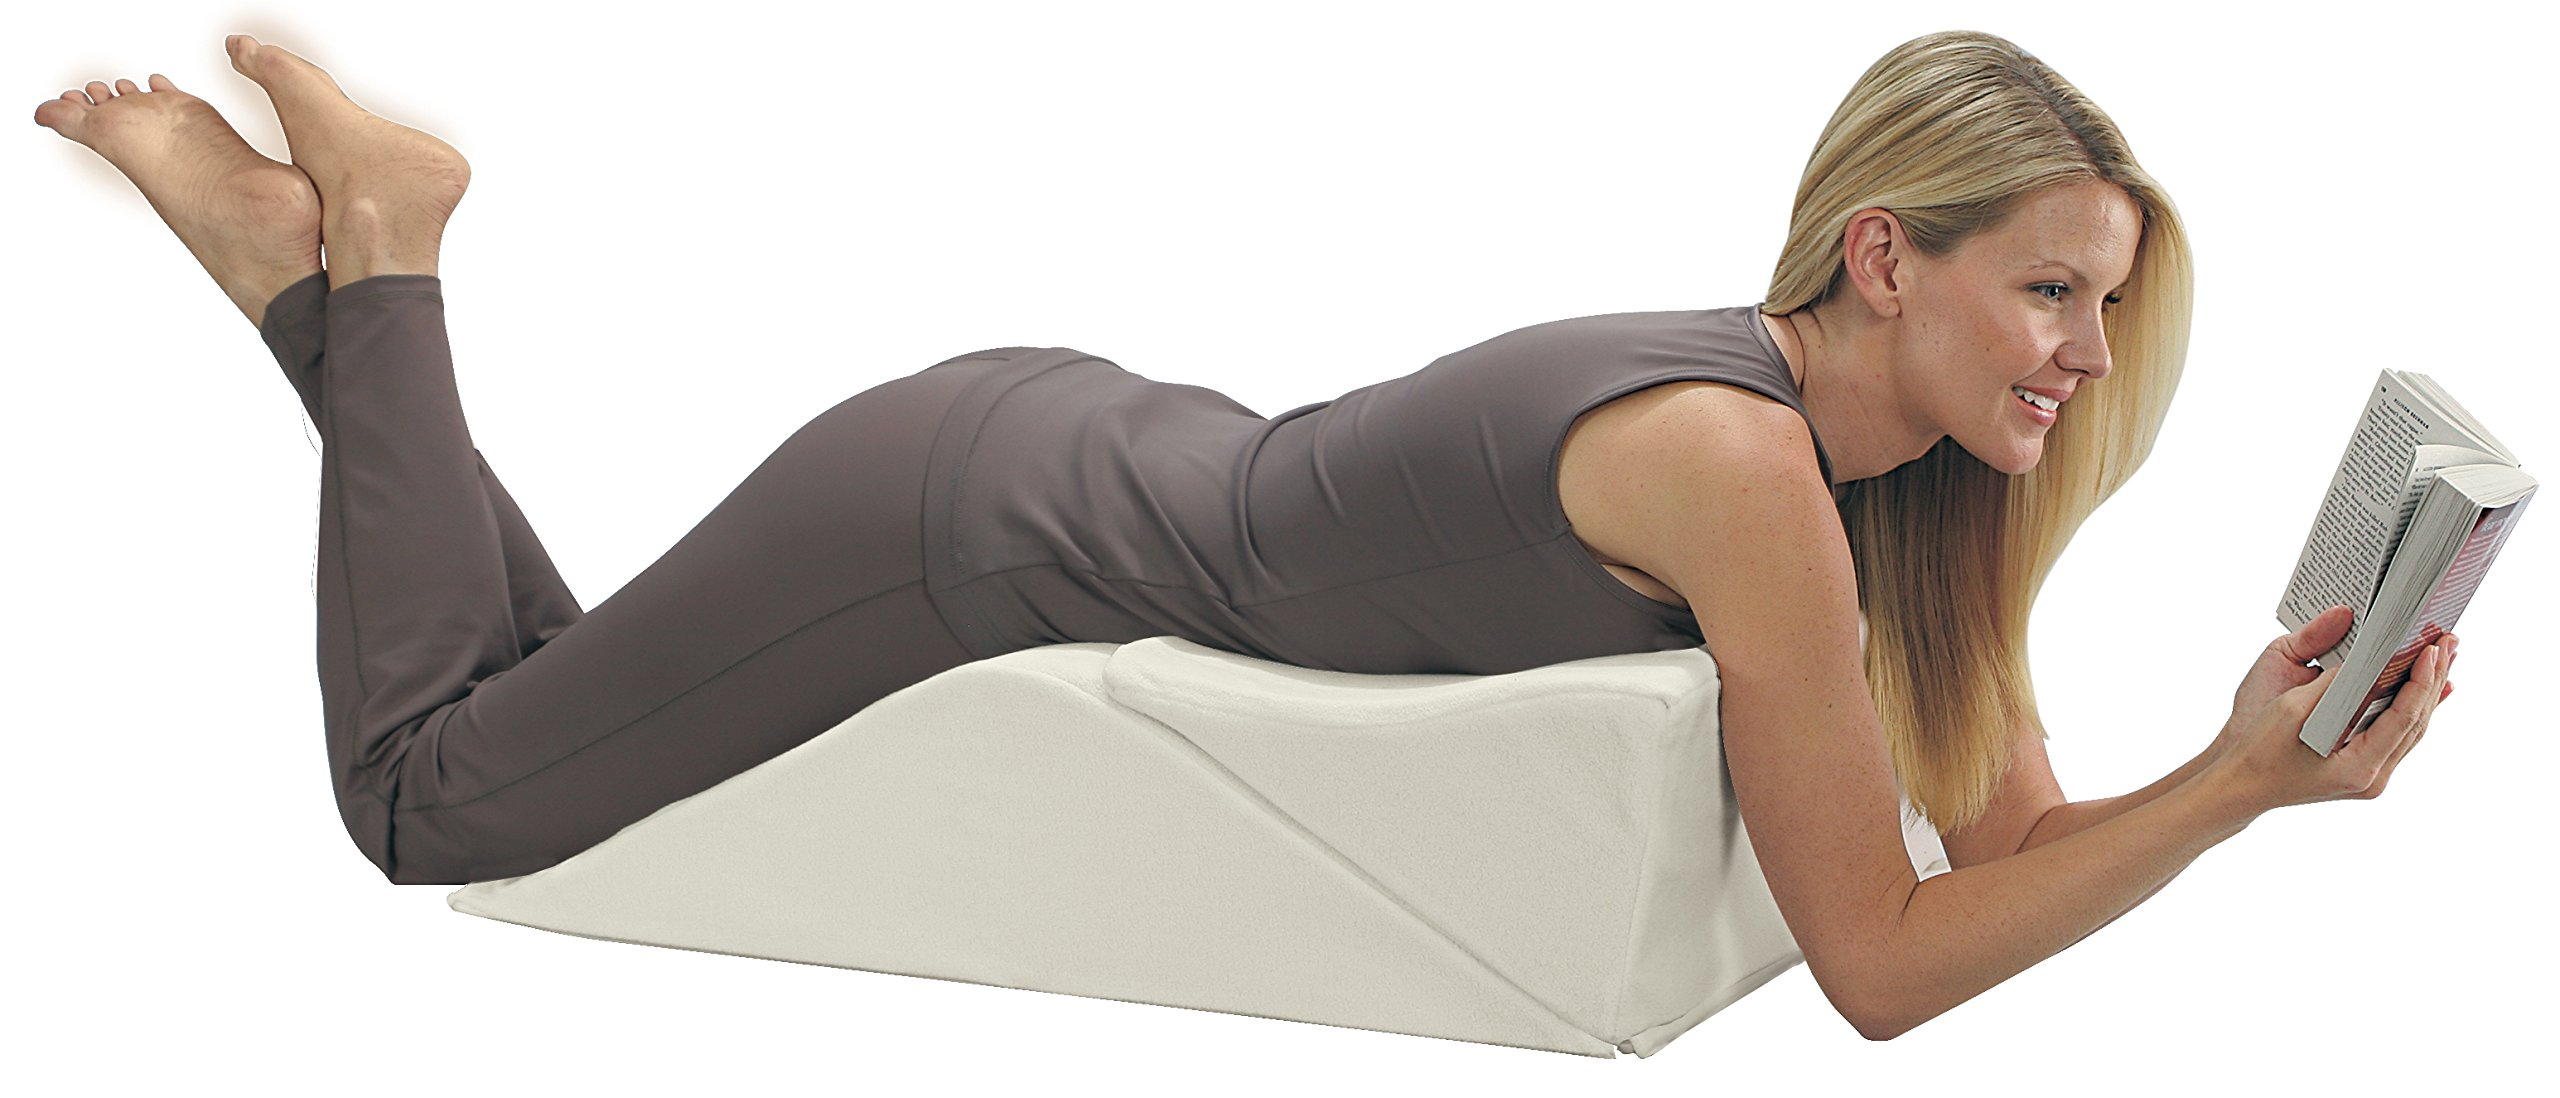 Contour Products Backmax Foam Bed Wedge System by Contour (Image #3)